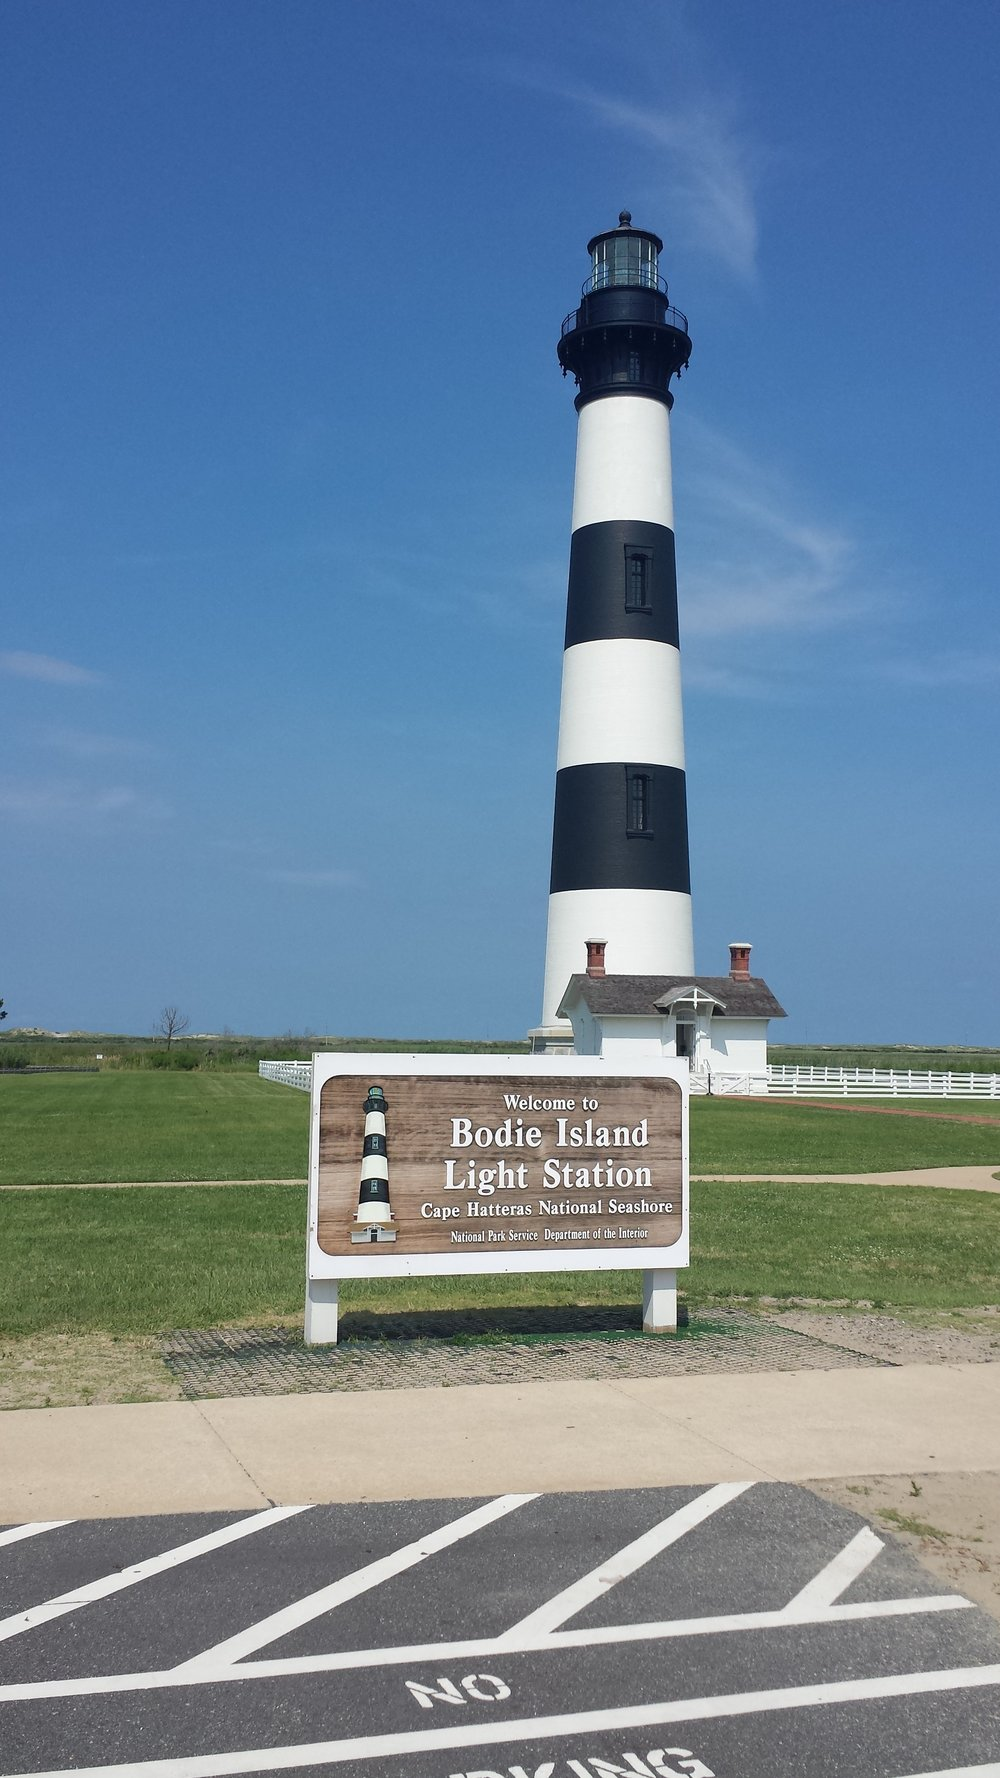 Most of the famous lighthouses [like Bodie Island  Light Station, pictured] are run by the National Park Service.